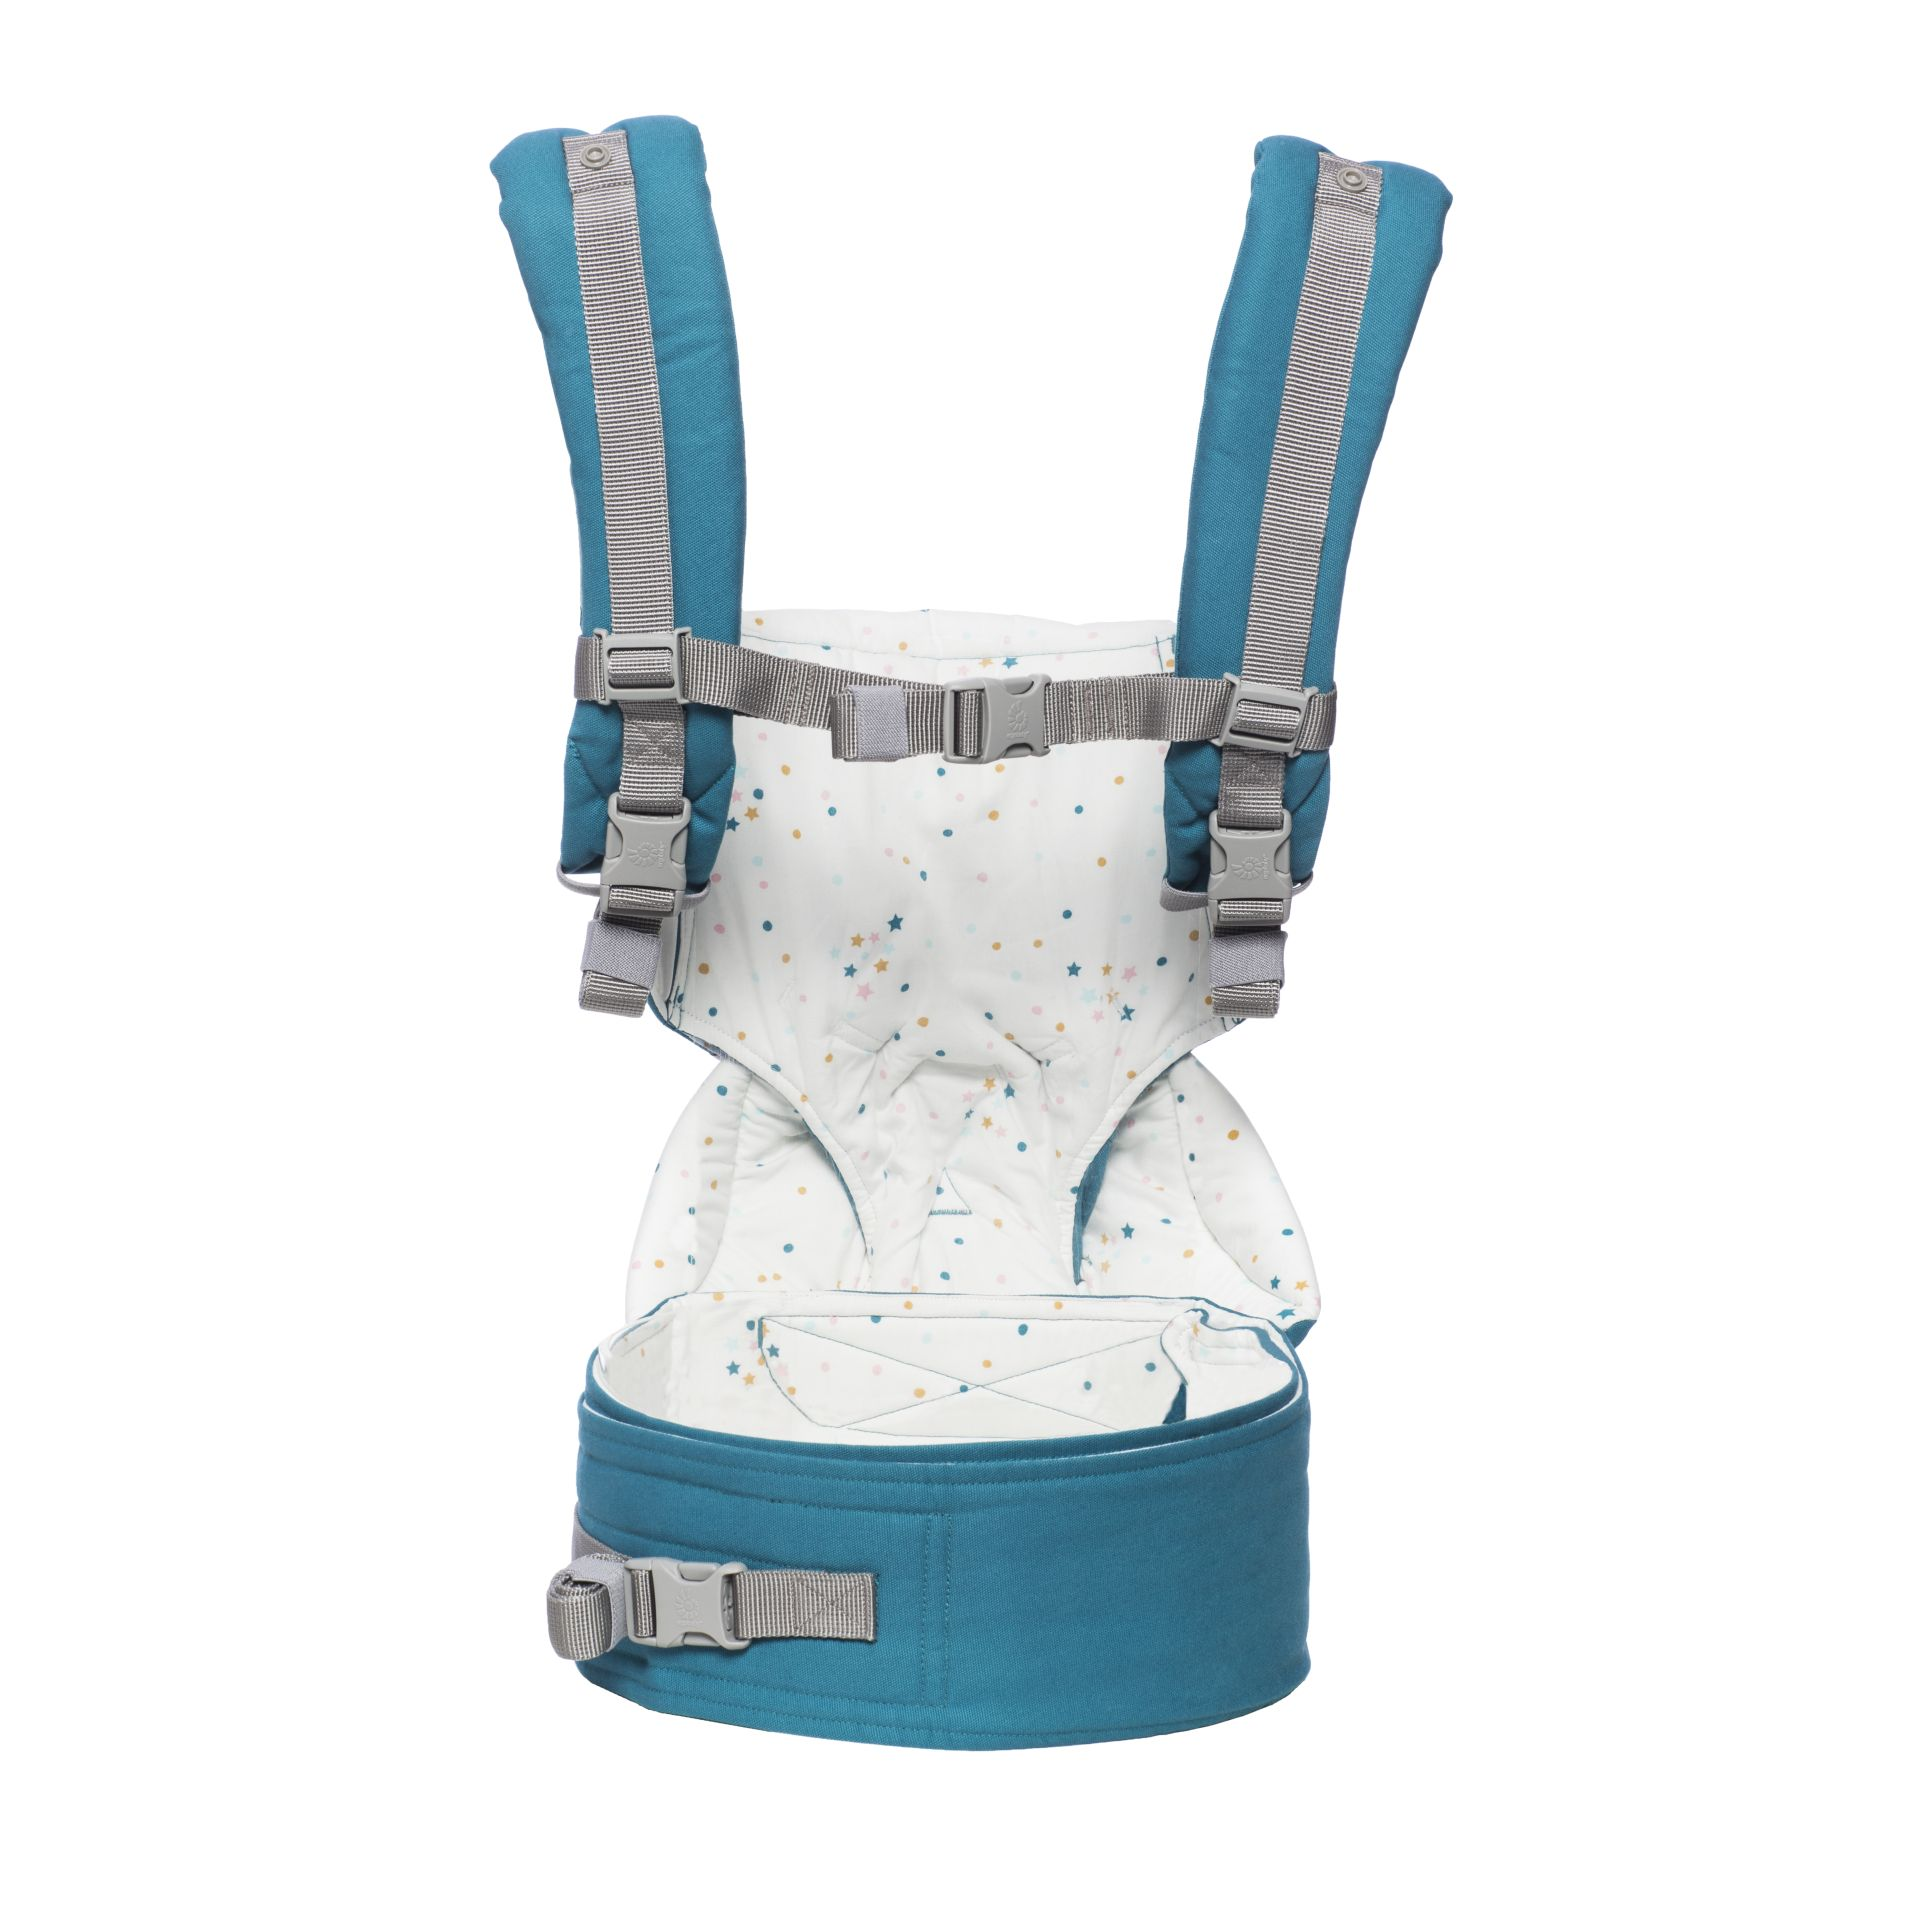 a6fa5dcdba8 ... Ergobaby 360° Baby Carrier Festive Skies - large image 3 ...